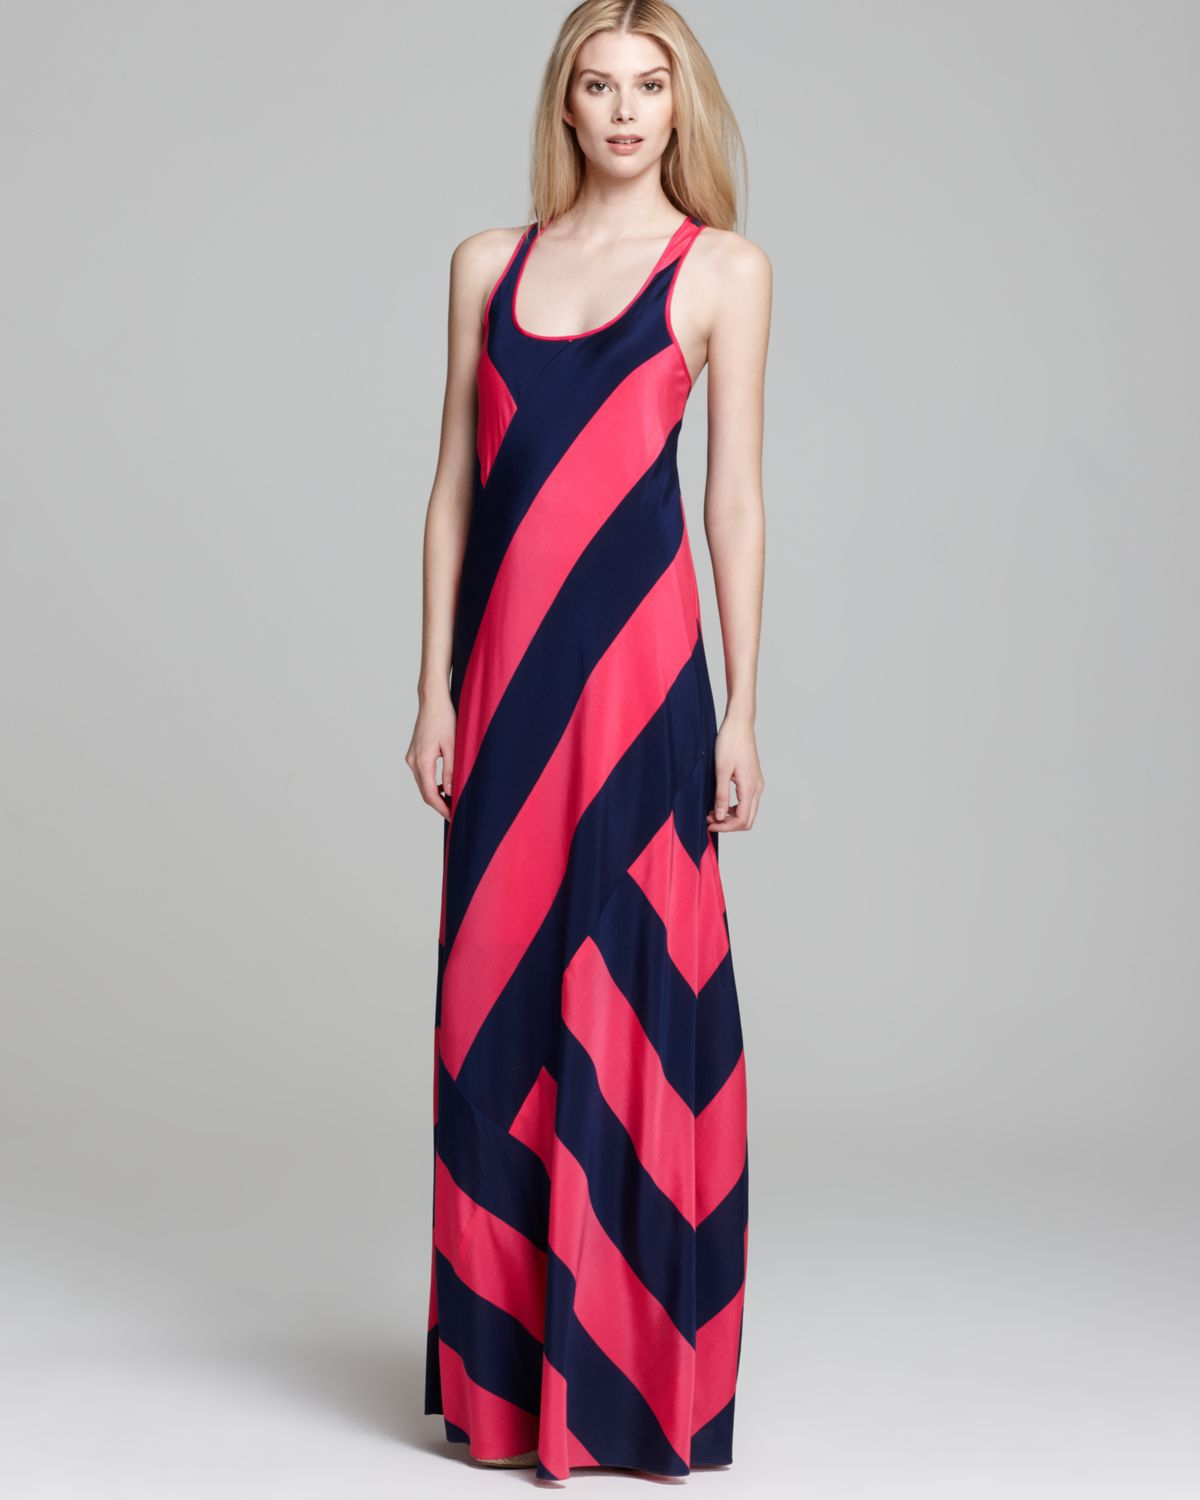 Dkny Scoop Neck Tank Maxi Dress in Pink  Lyst